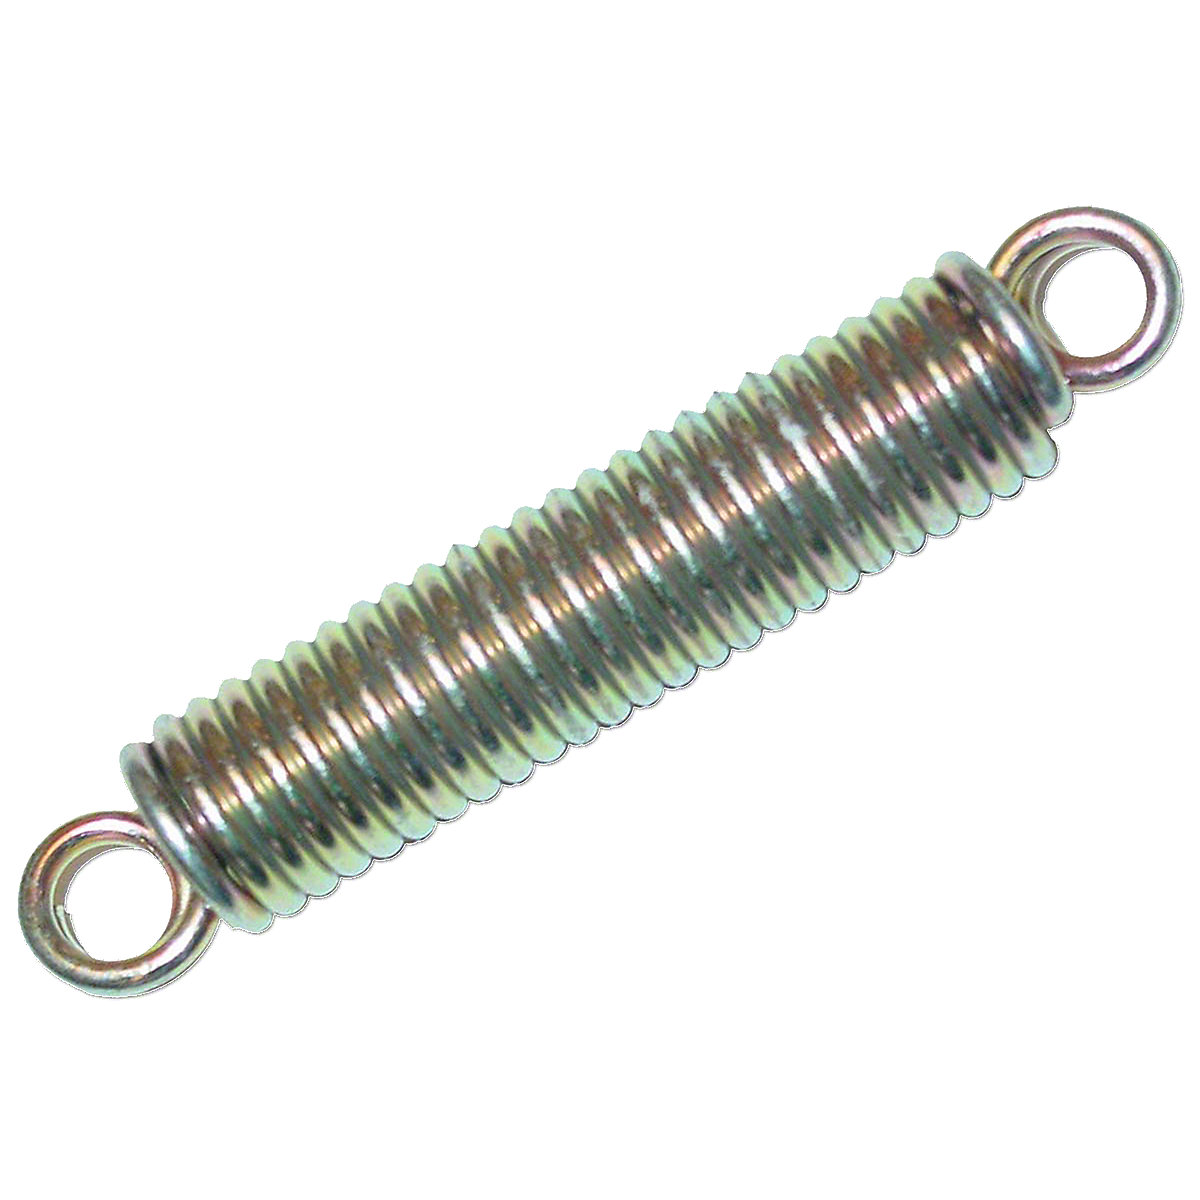 Snap Coupler Spring For Allis Chalmers: 190XT, D10, D12, D14, D15, D17, D19, WD, 190.